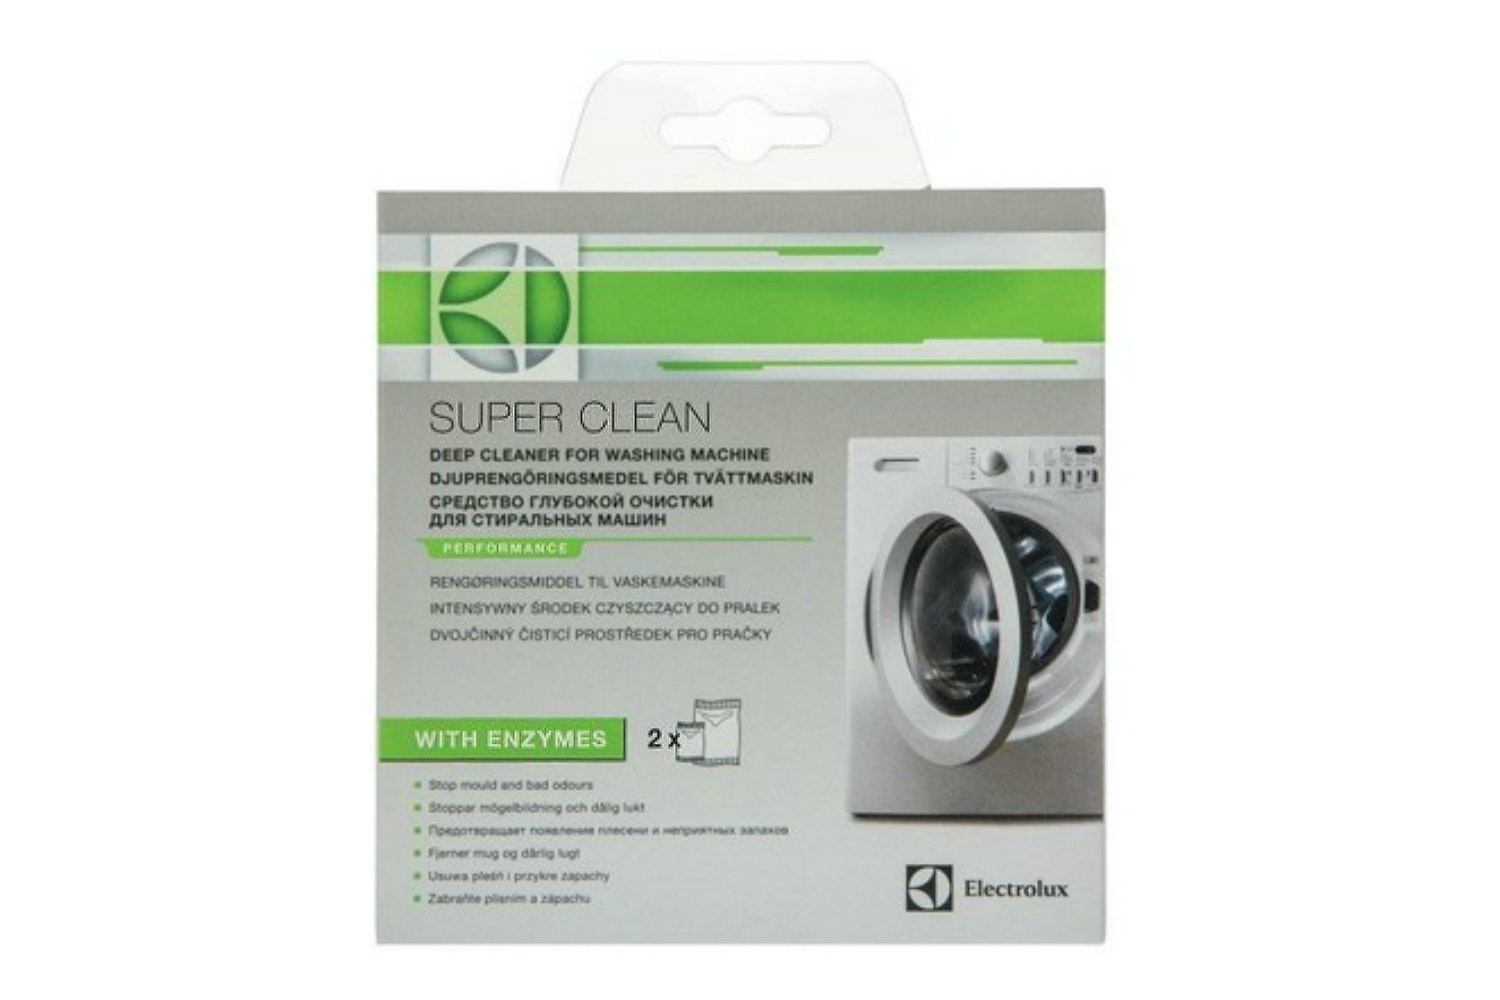 Electrolux Super Clean Washing Machine Cleaner | 9029792786